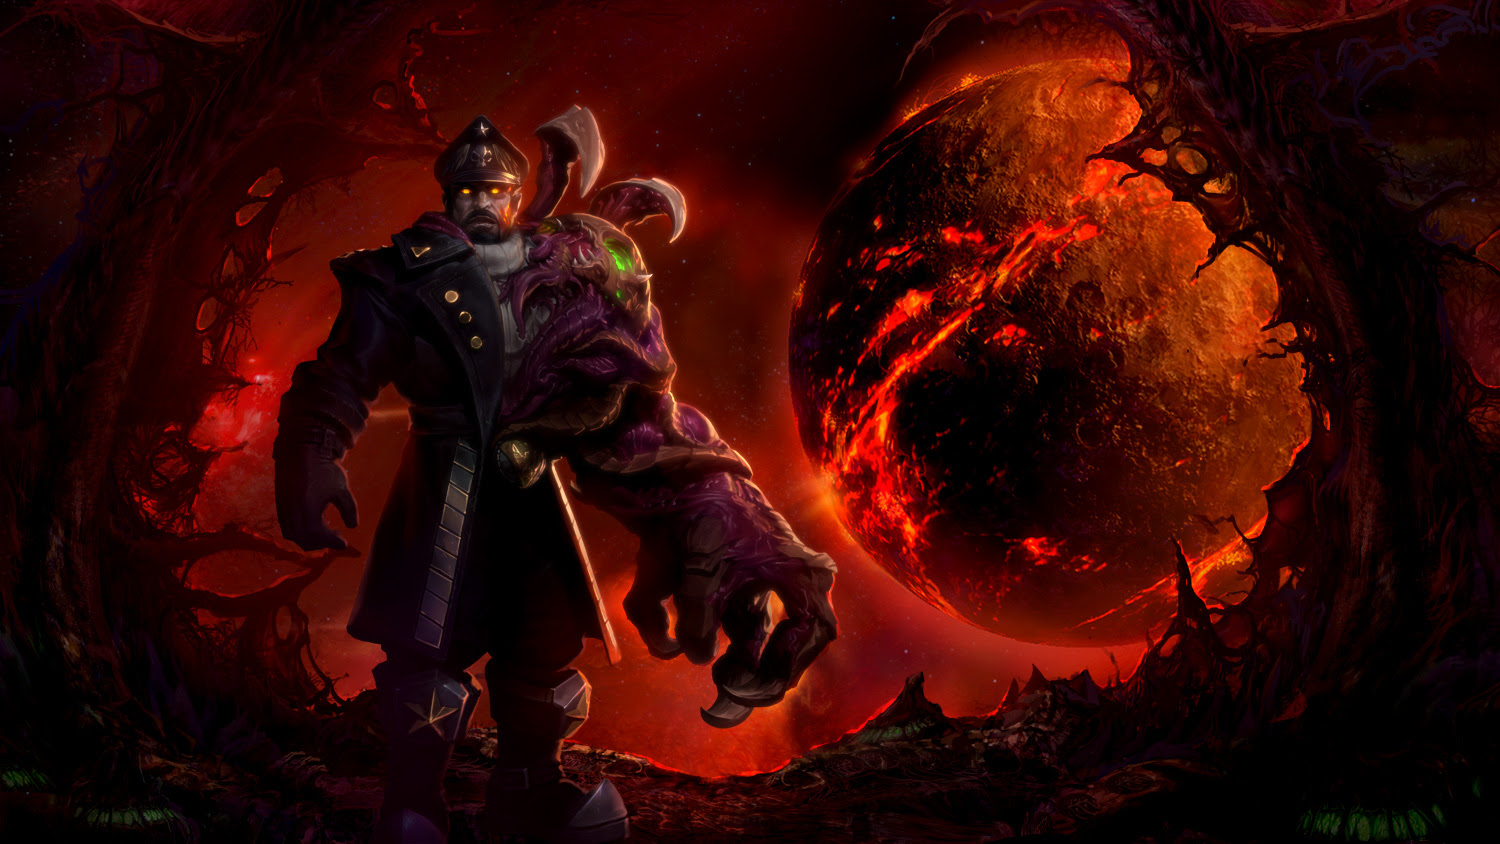 StarCraft's Alexei Stukov is coming to Heroes of the Storm screenshot